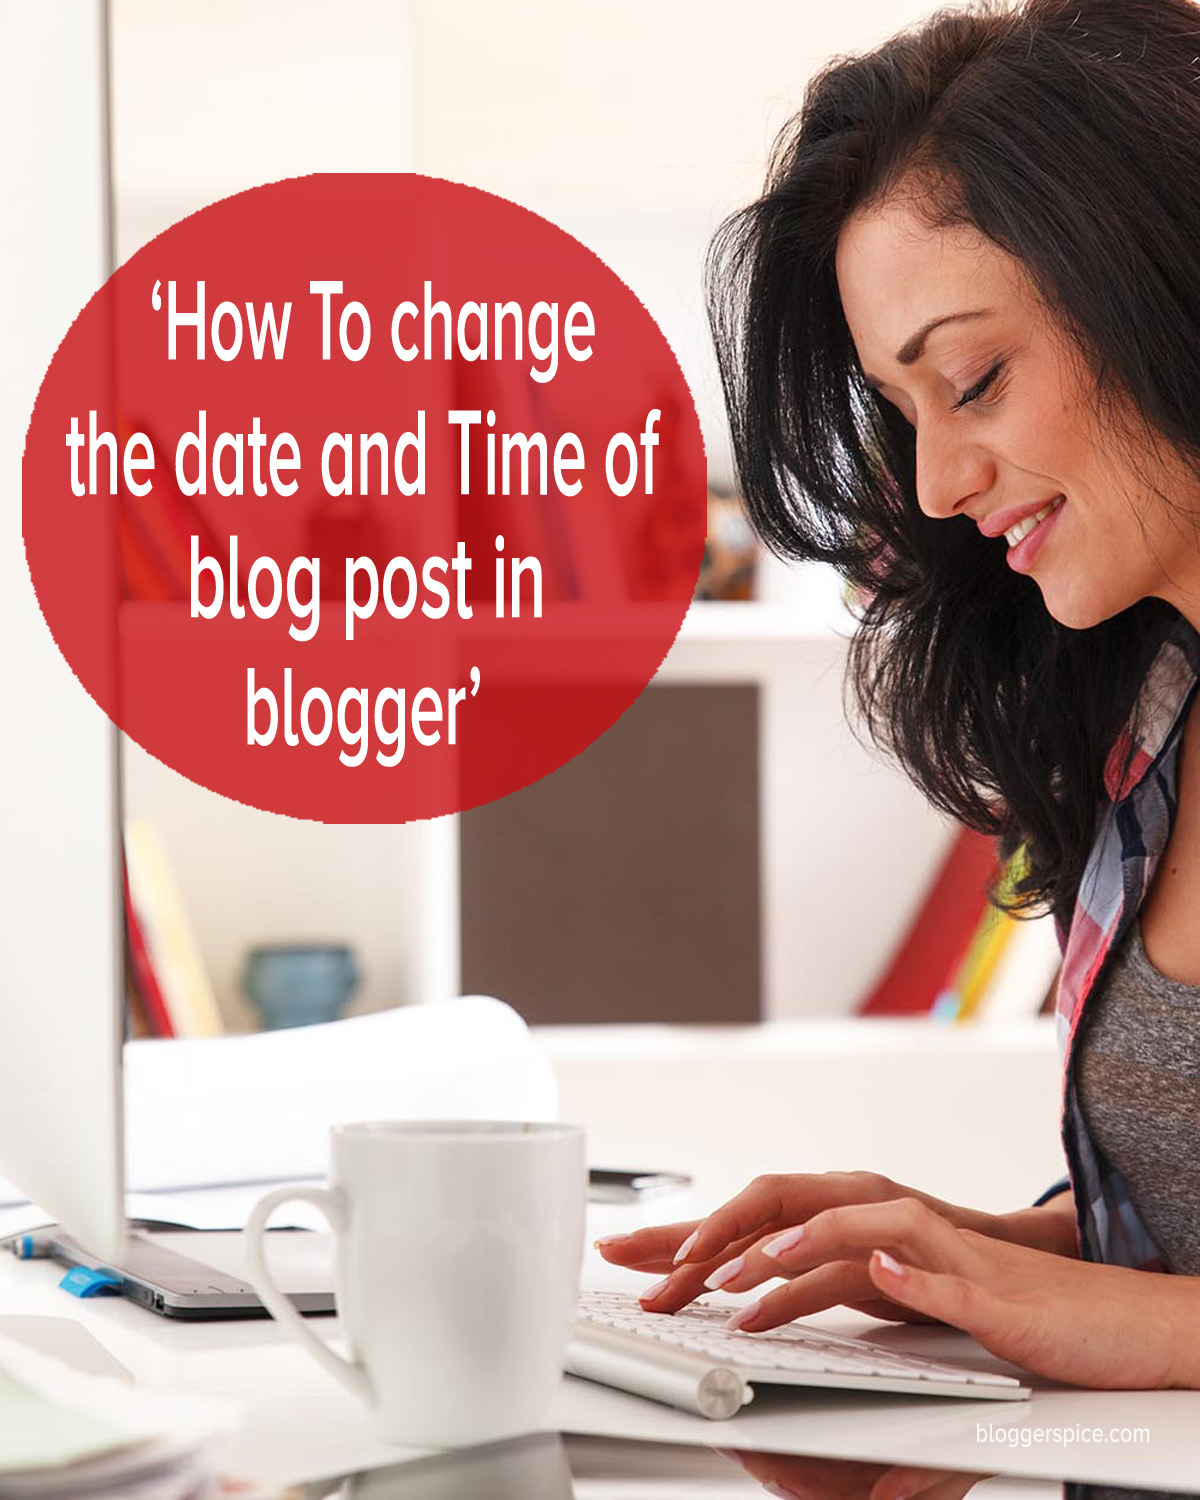 tutorial to change the date of a blog post in blogger and Republish for SEO?